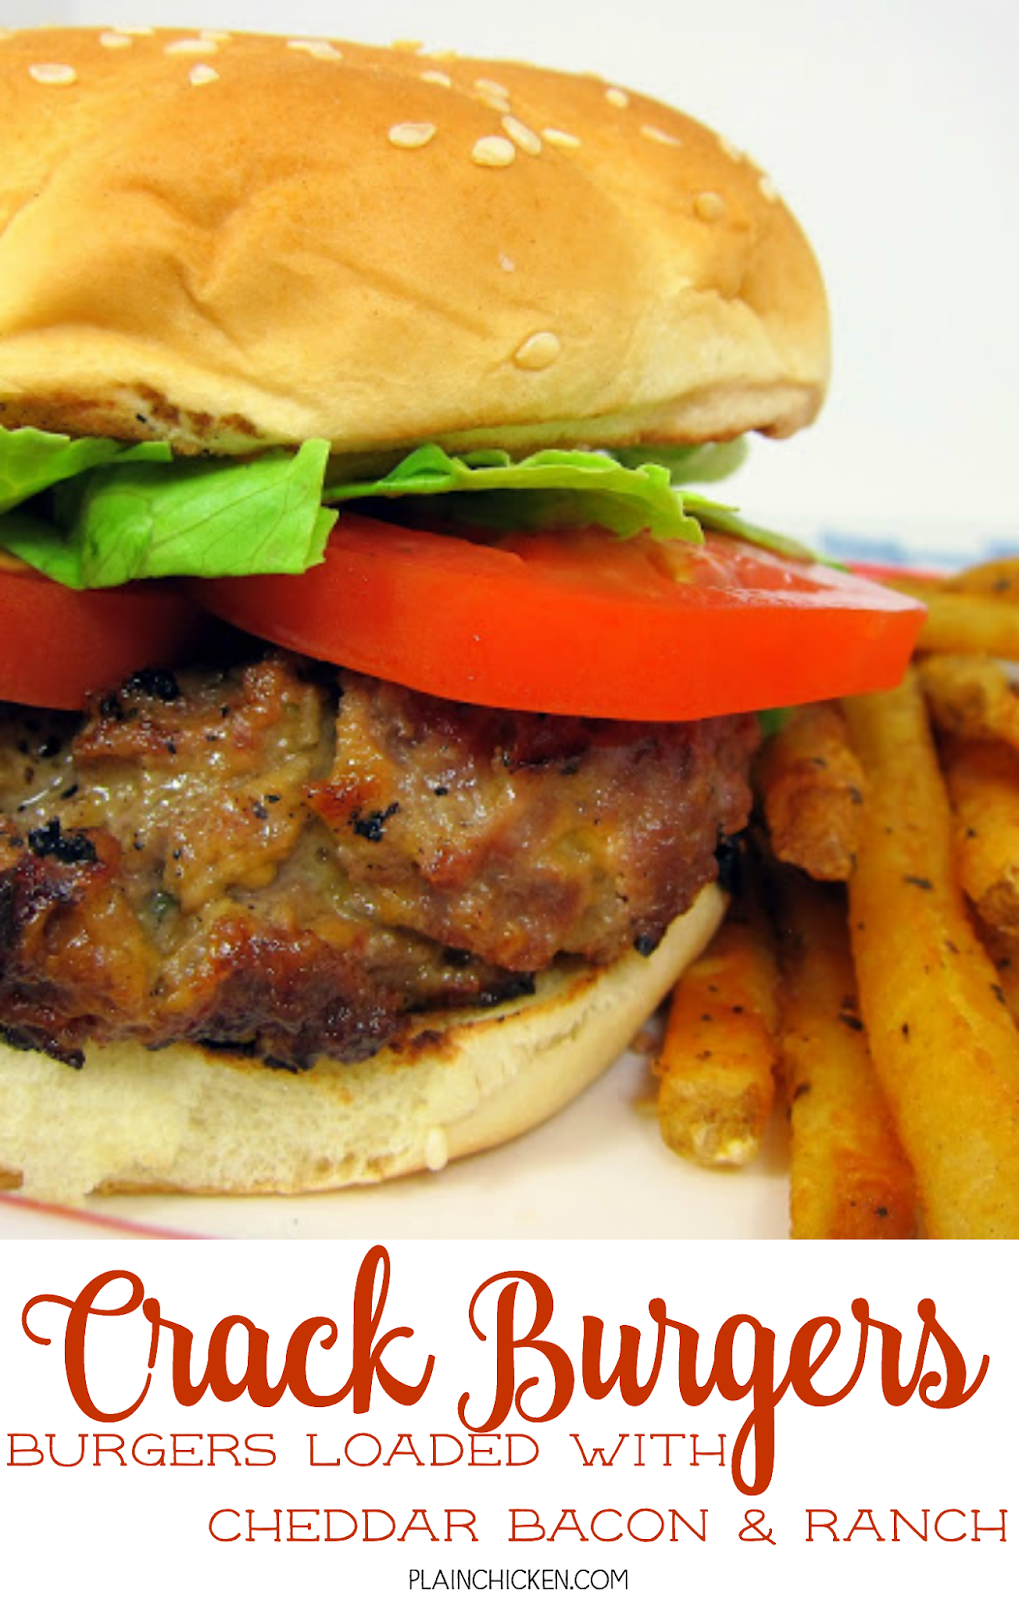 Crack Burger - burgers loaded with cheddar, bacon and ranch! Our all-time favorite burger! We always make extra and freeze the patties for later.